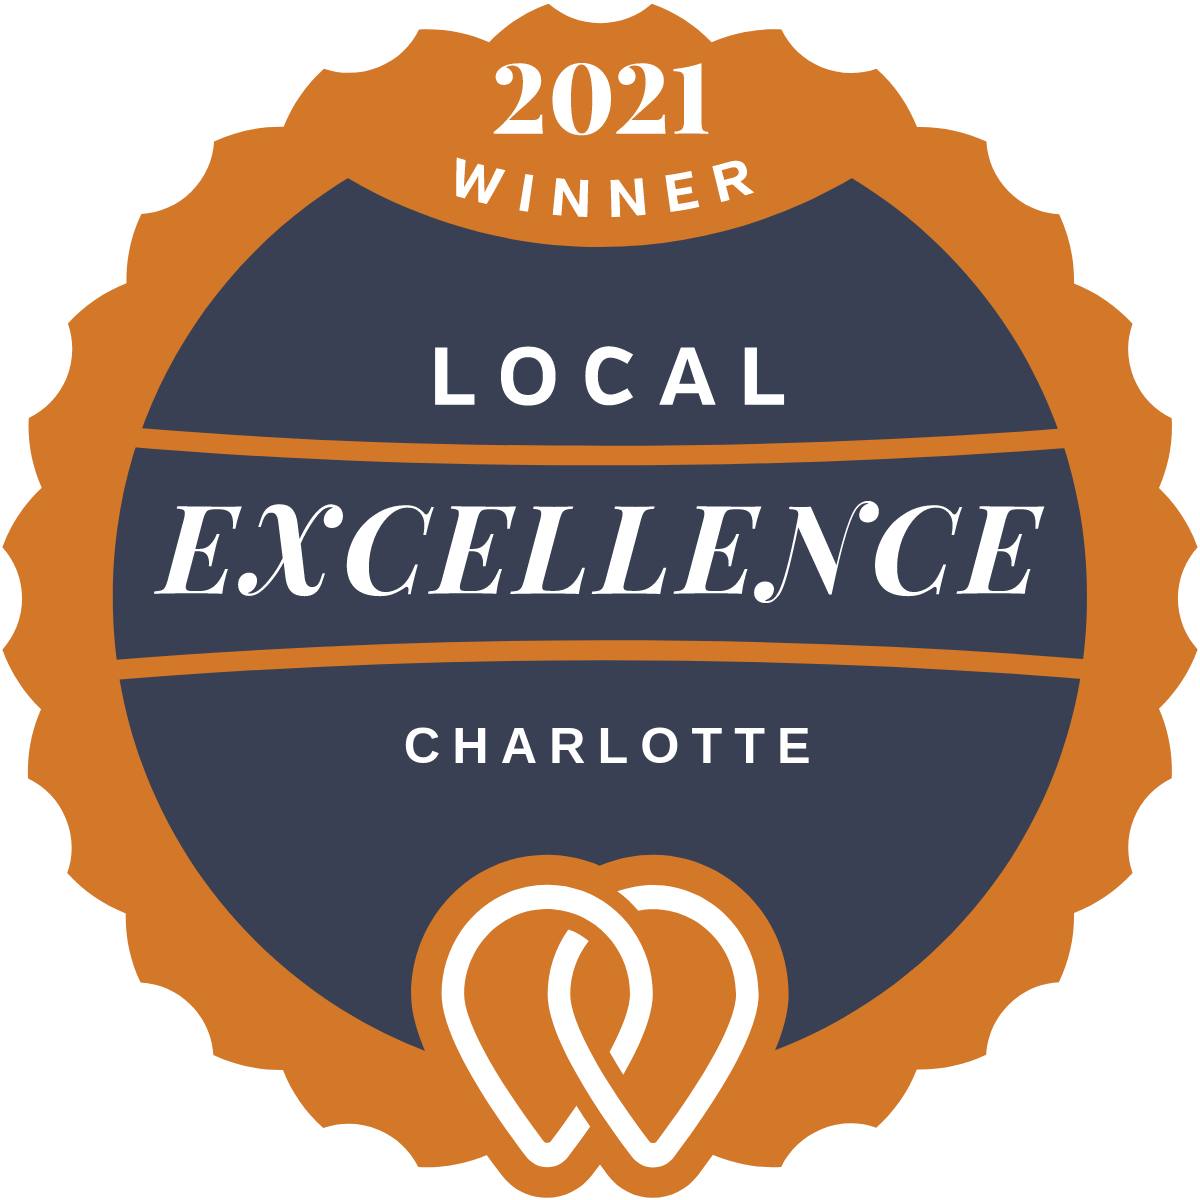 2021 Local Excellence Winner in Charlotte, NC